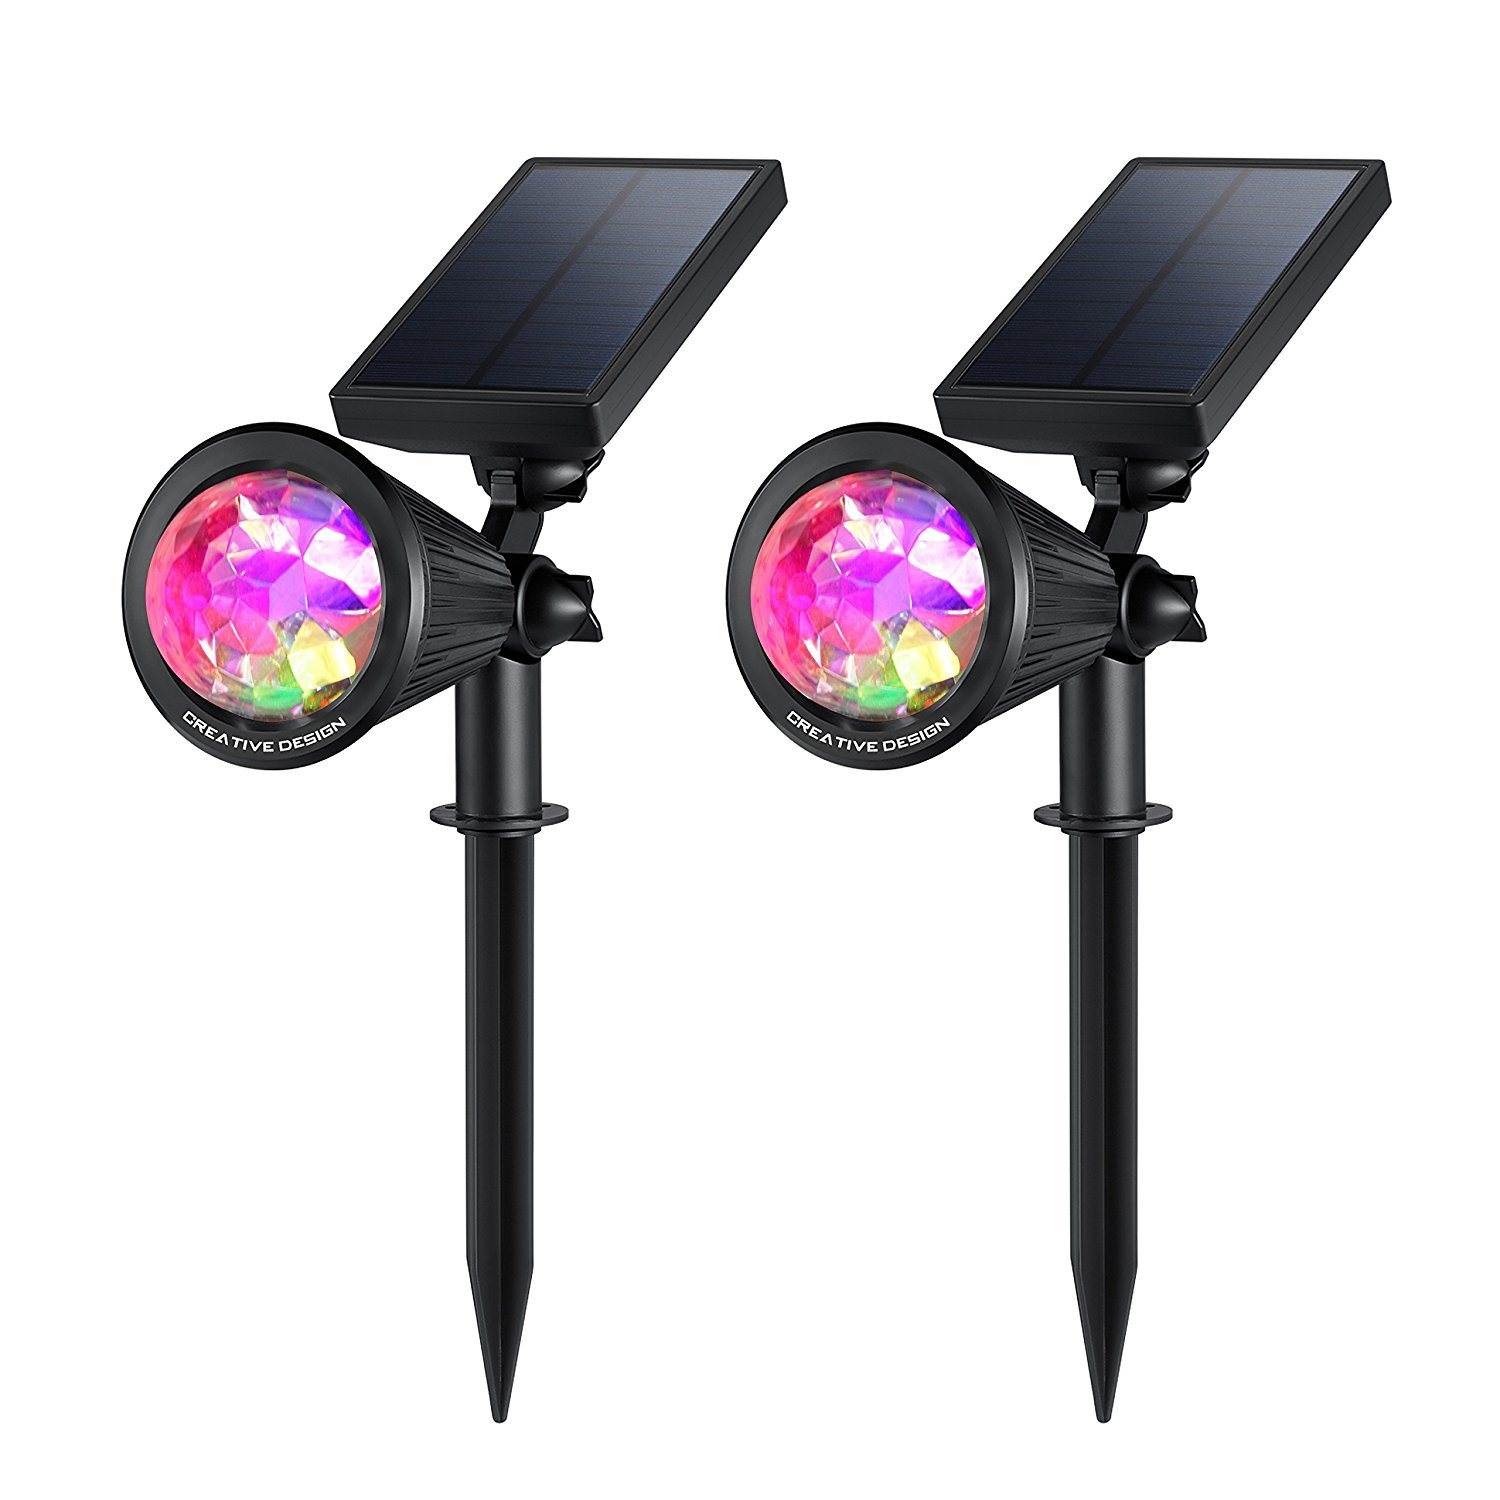 CREATIVE DESIGN Solar Lights Outdoor Colored Solar Spotlight Outdoor, Waterproof Wall Lights Solar Lights with Auto On/Off for Garden, Christmas, Holiday Decoration(2 Pack)